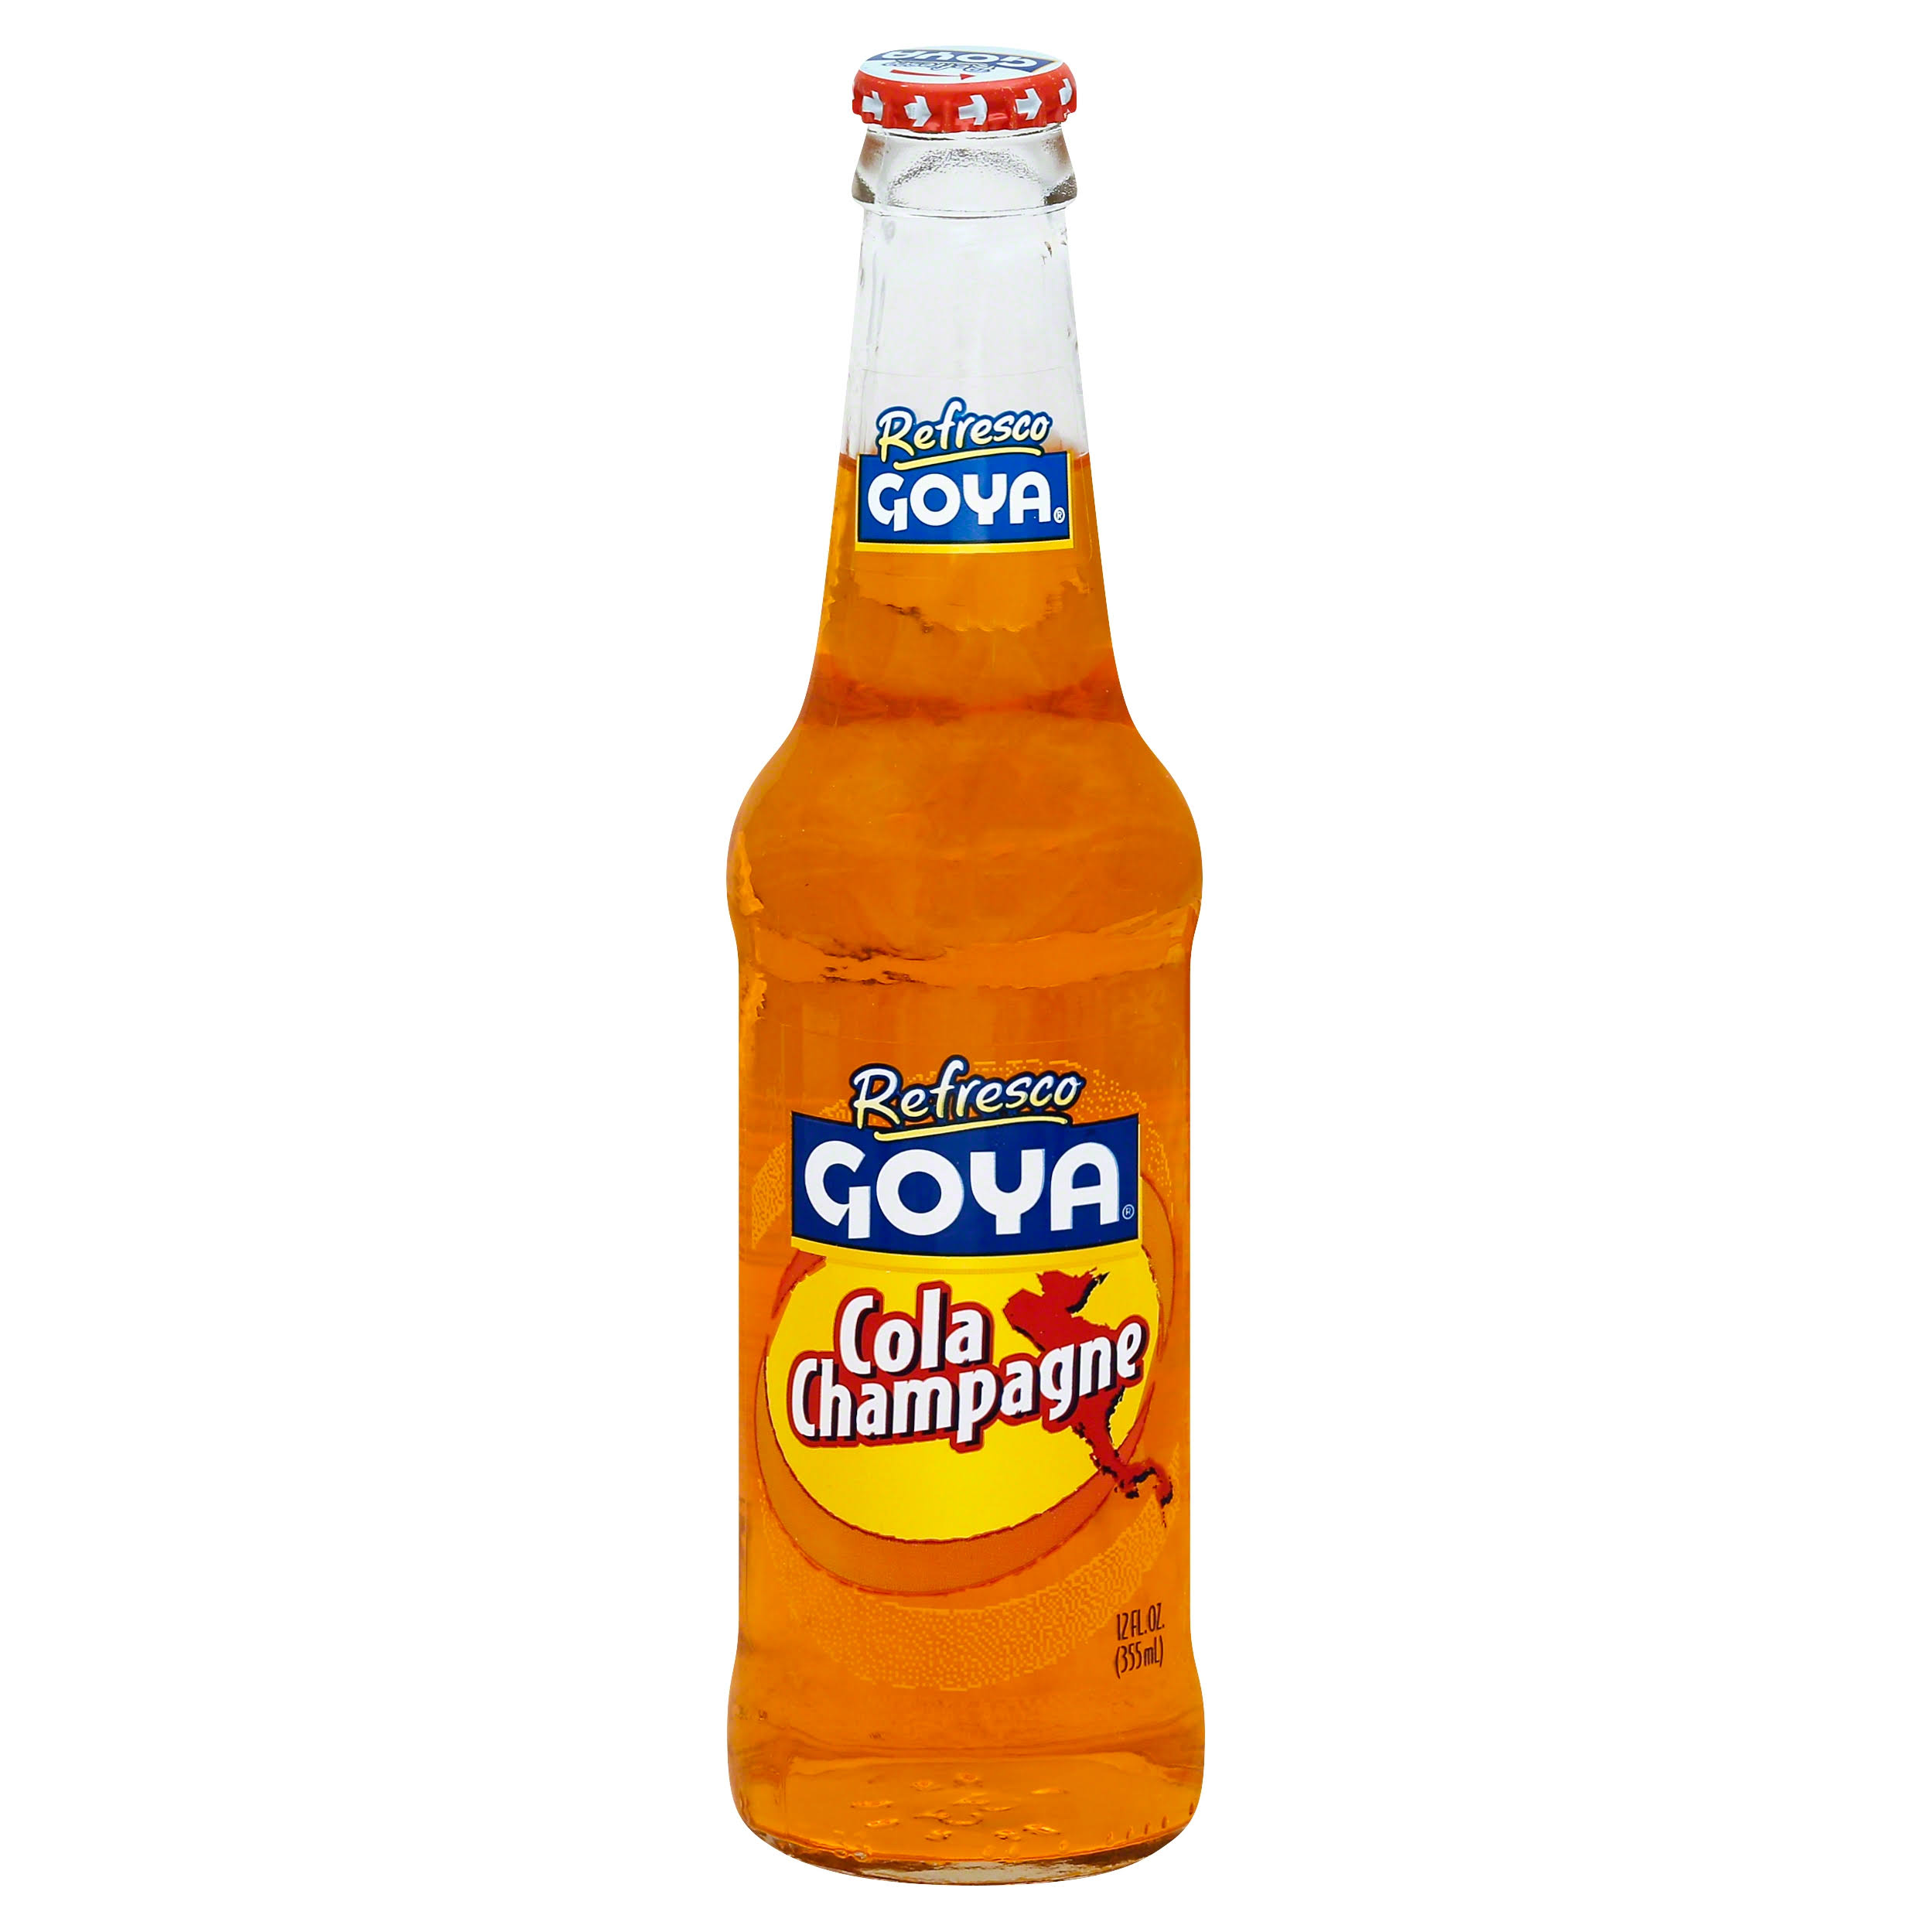 Goya Refresco Cola Champagne - 12 Oz